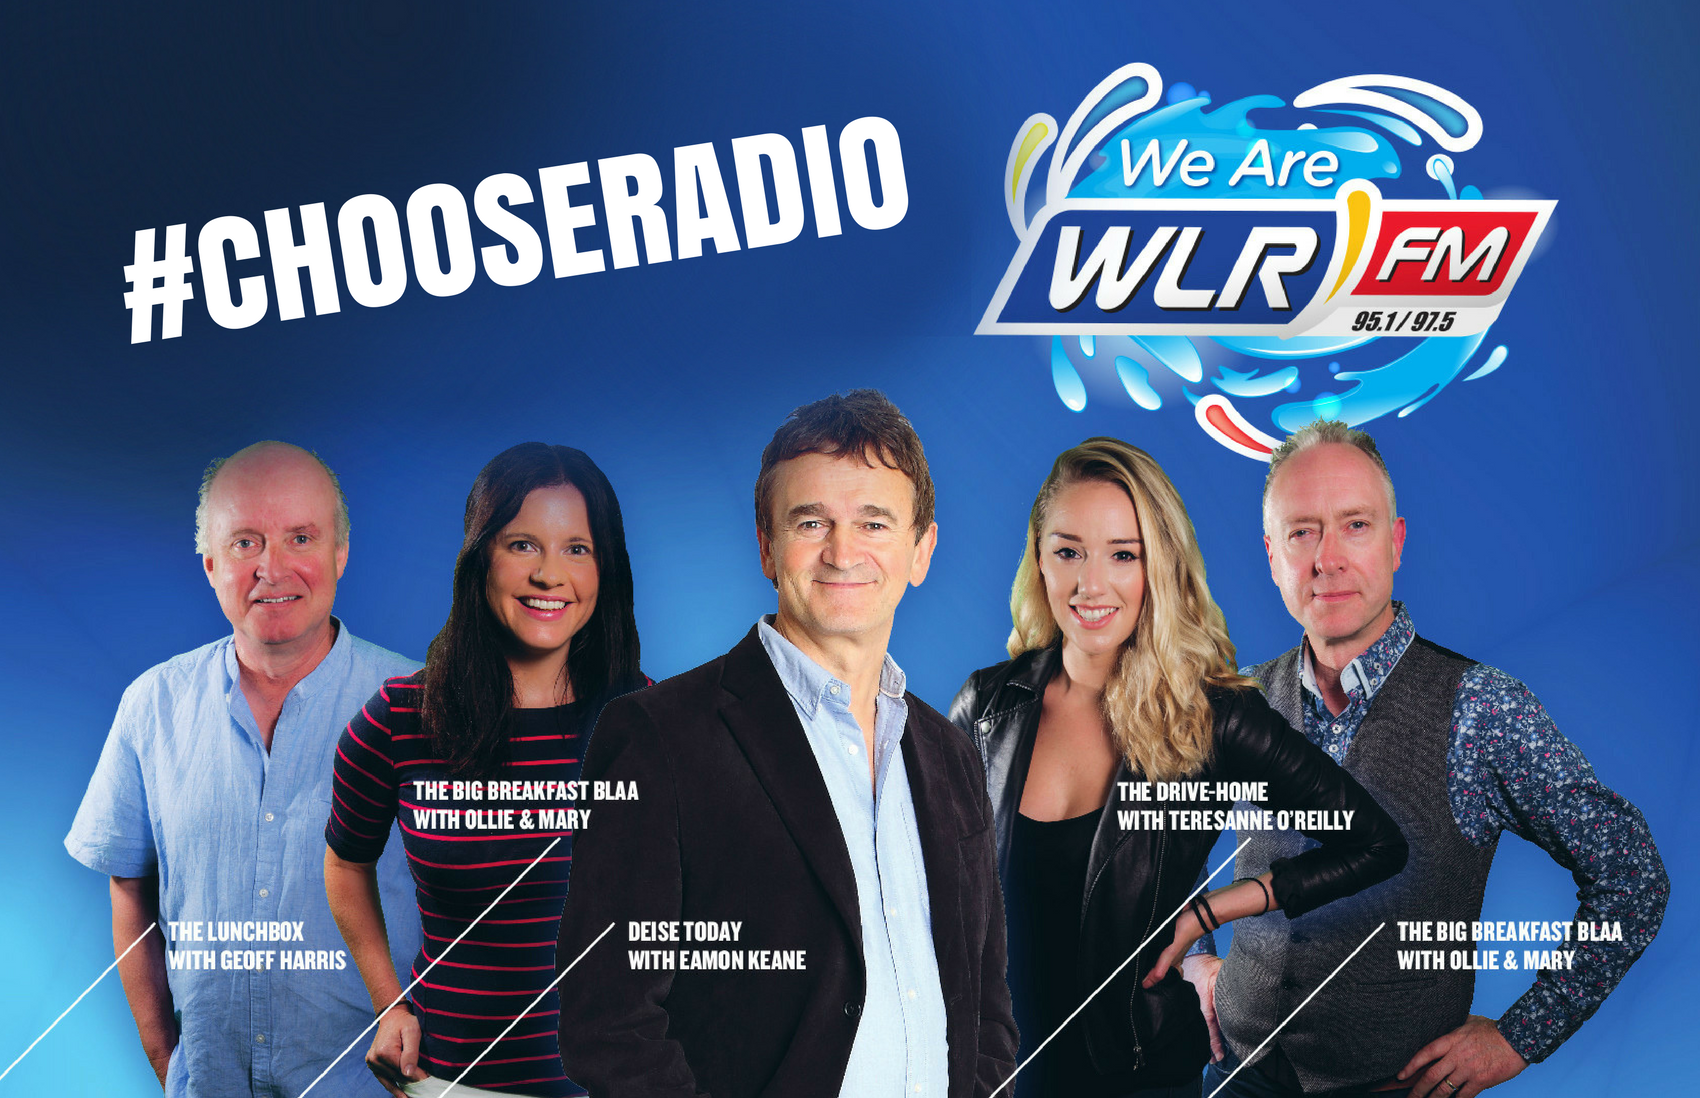 WLR records highest radio ratings figures in 10 years